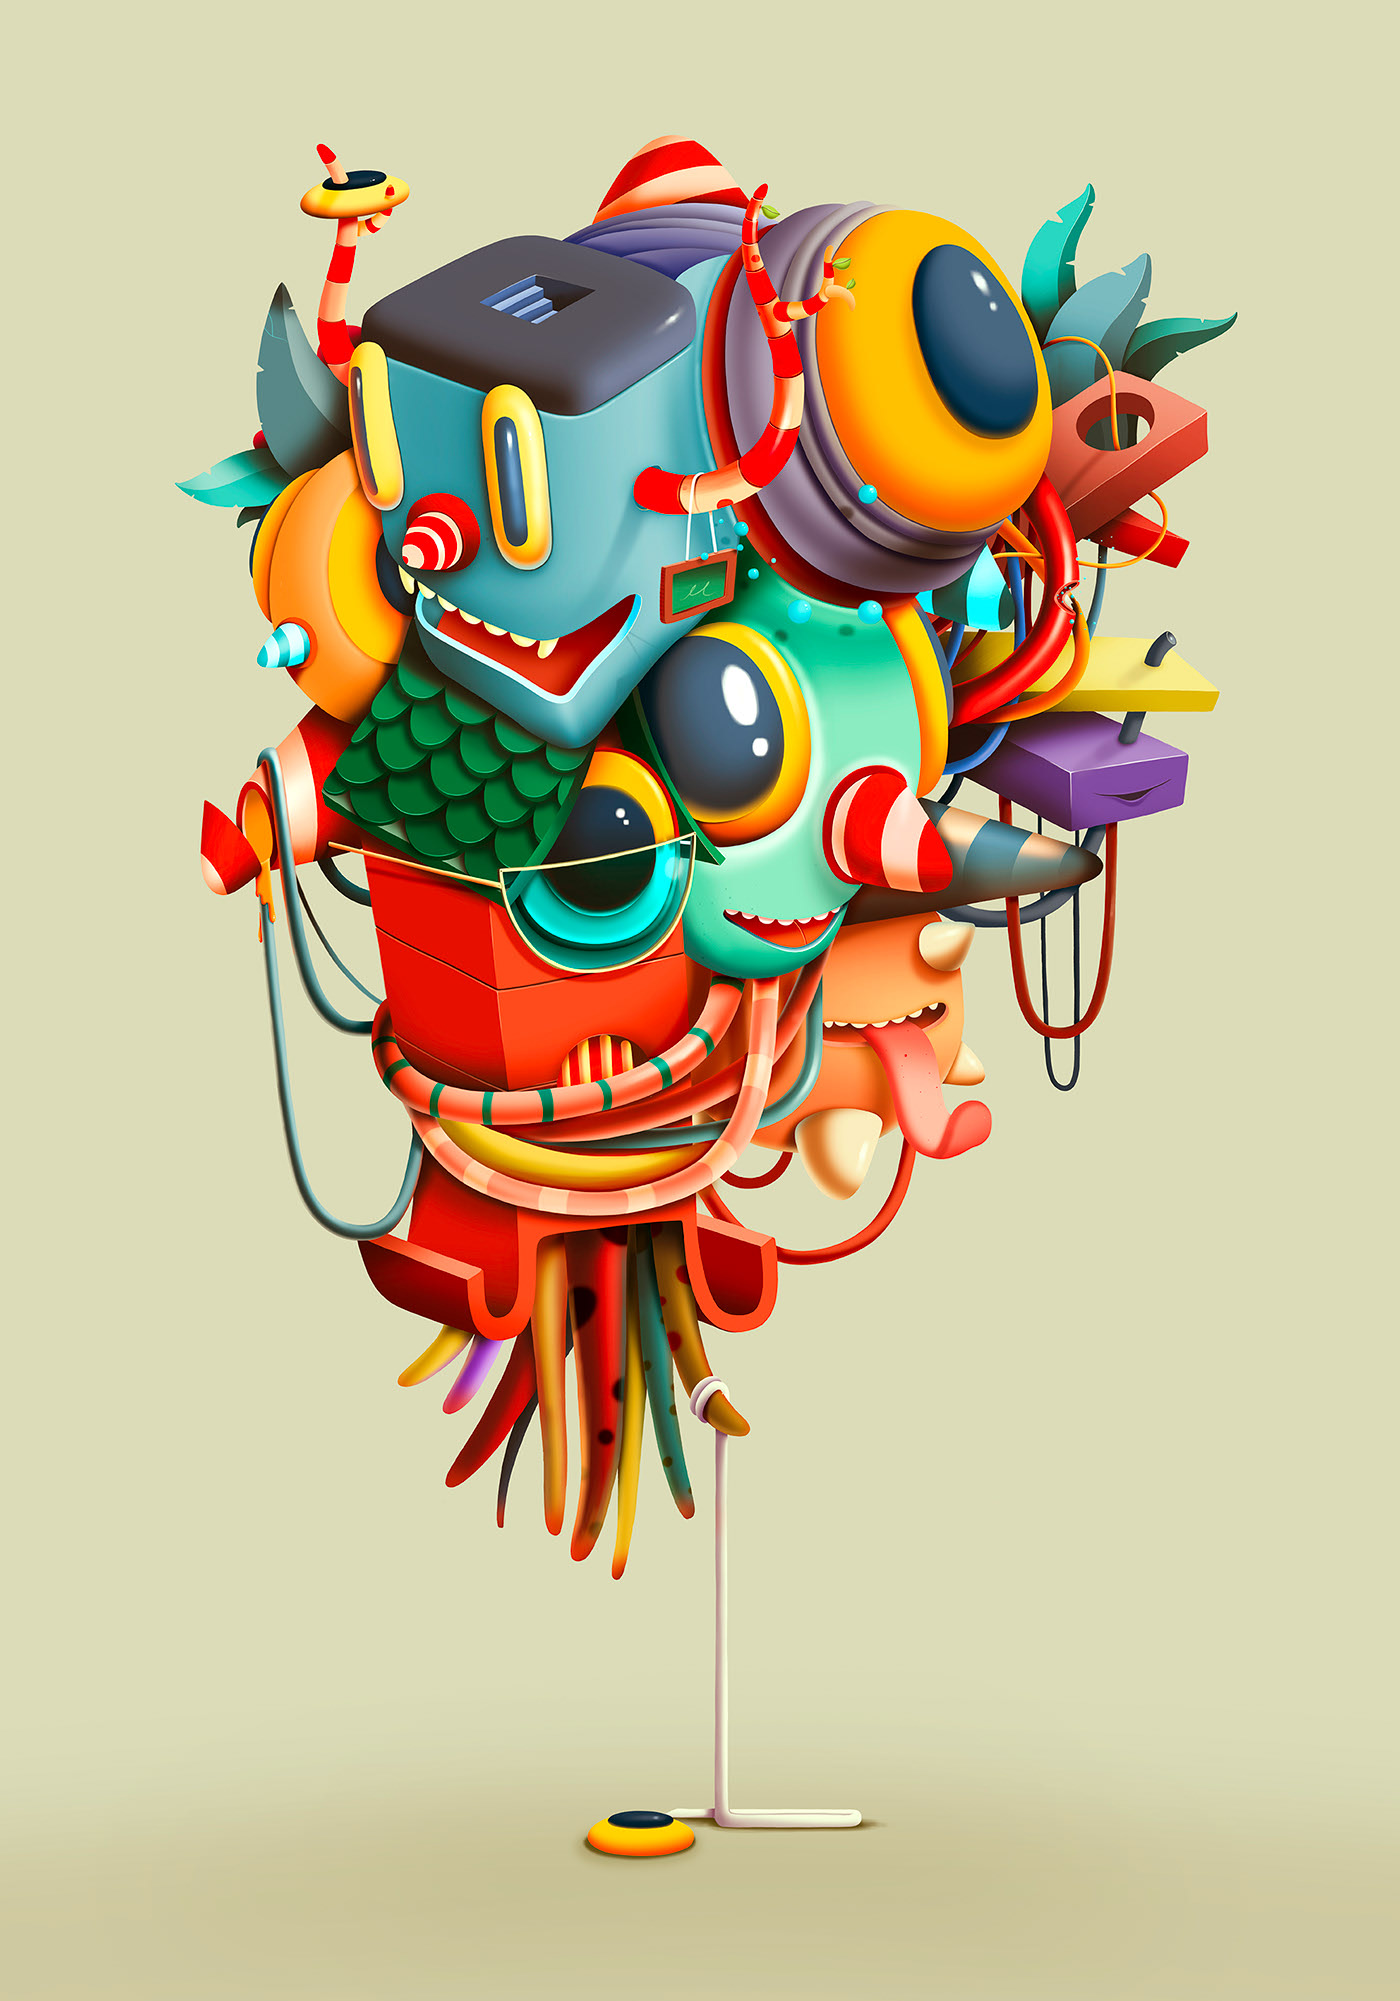 digital illustration doodle illustration by oscar llorens